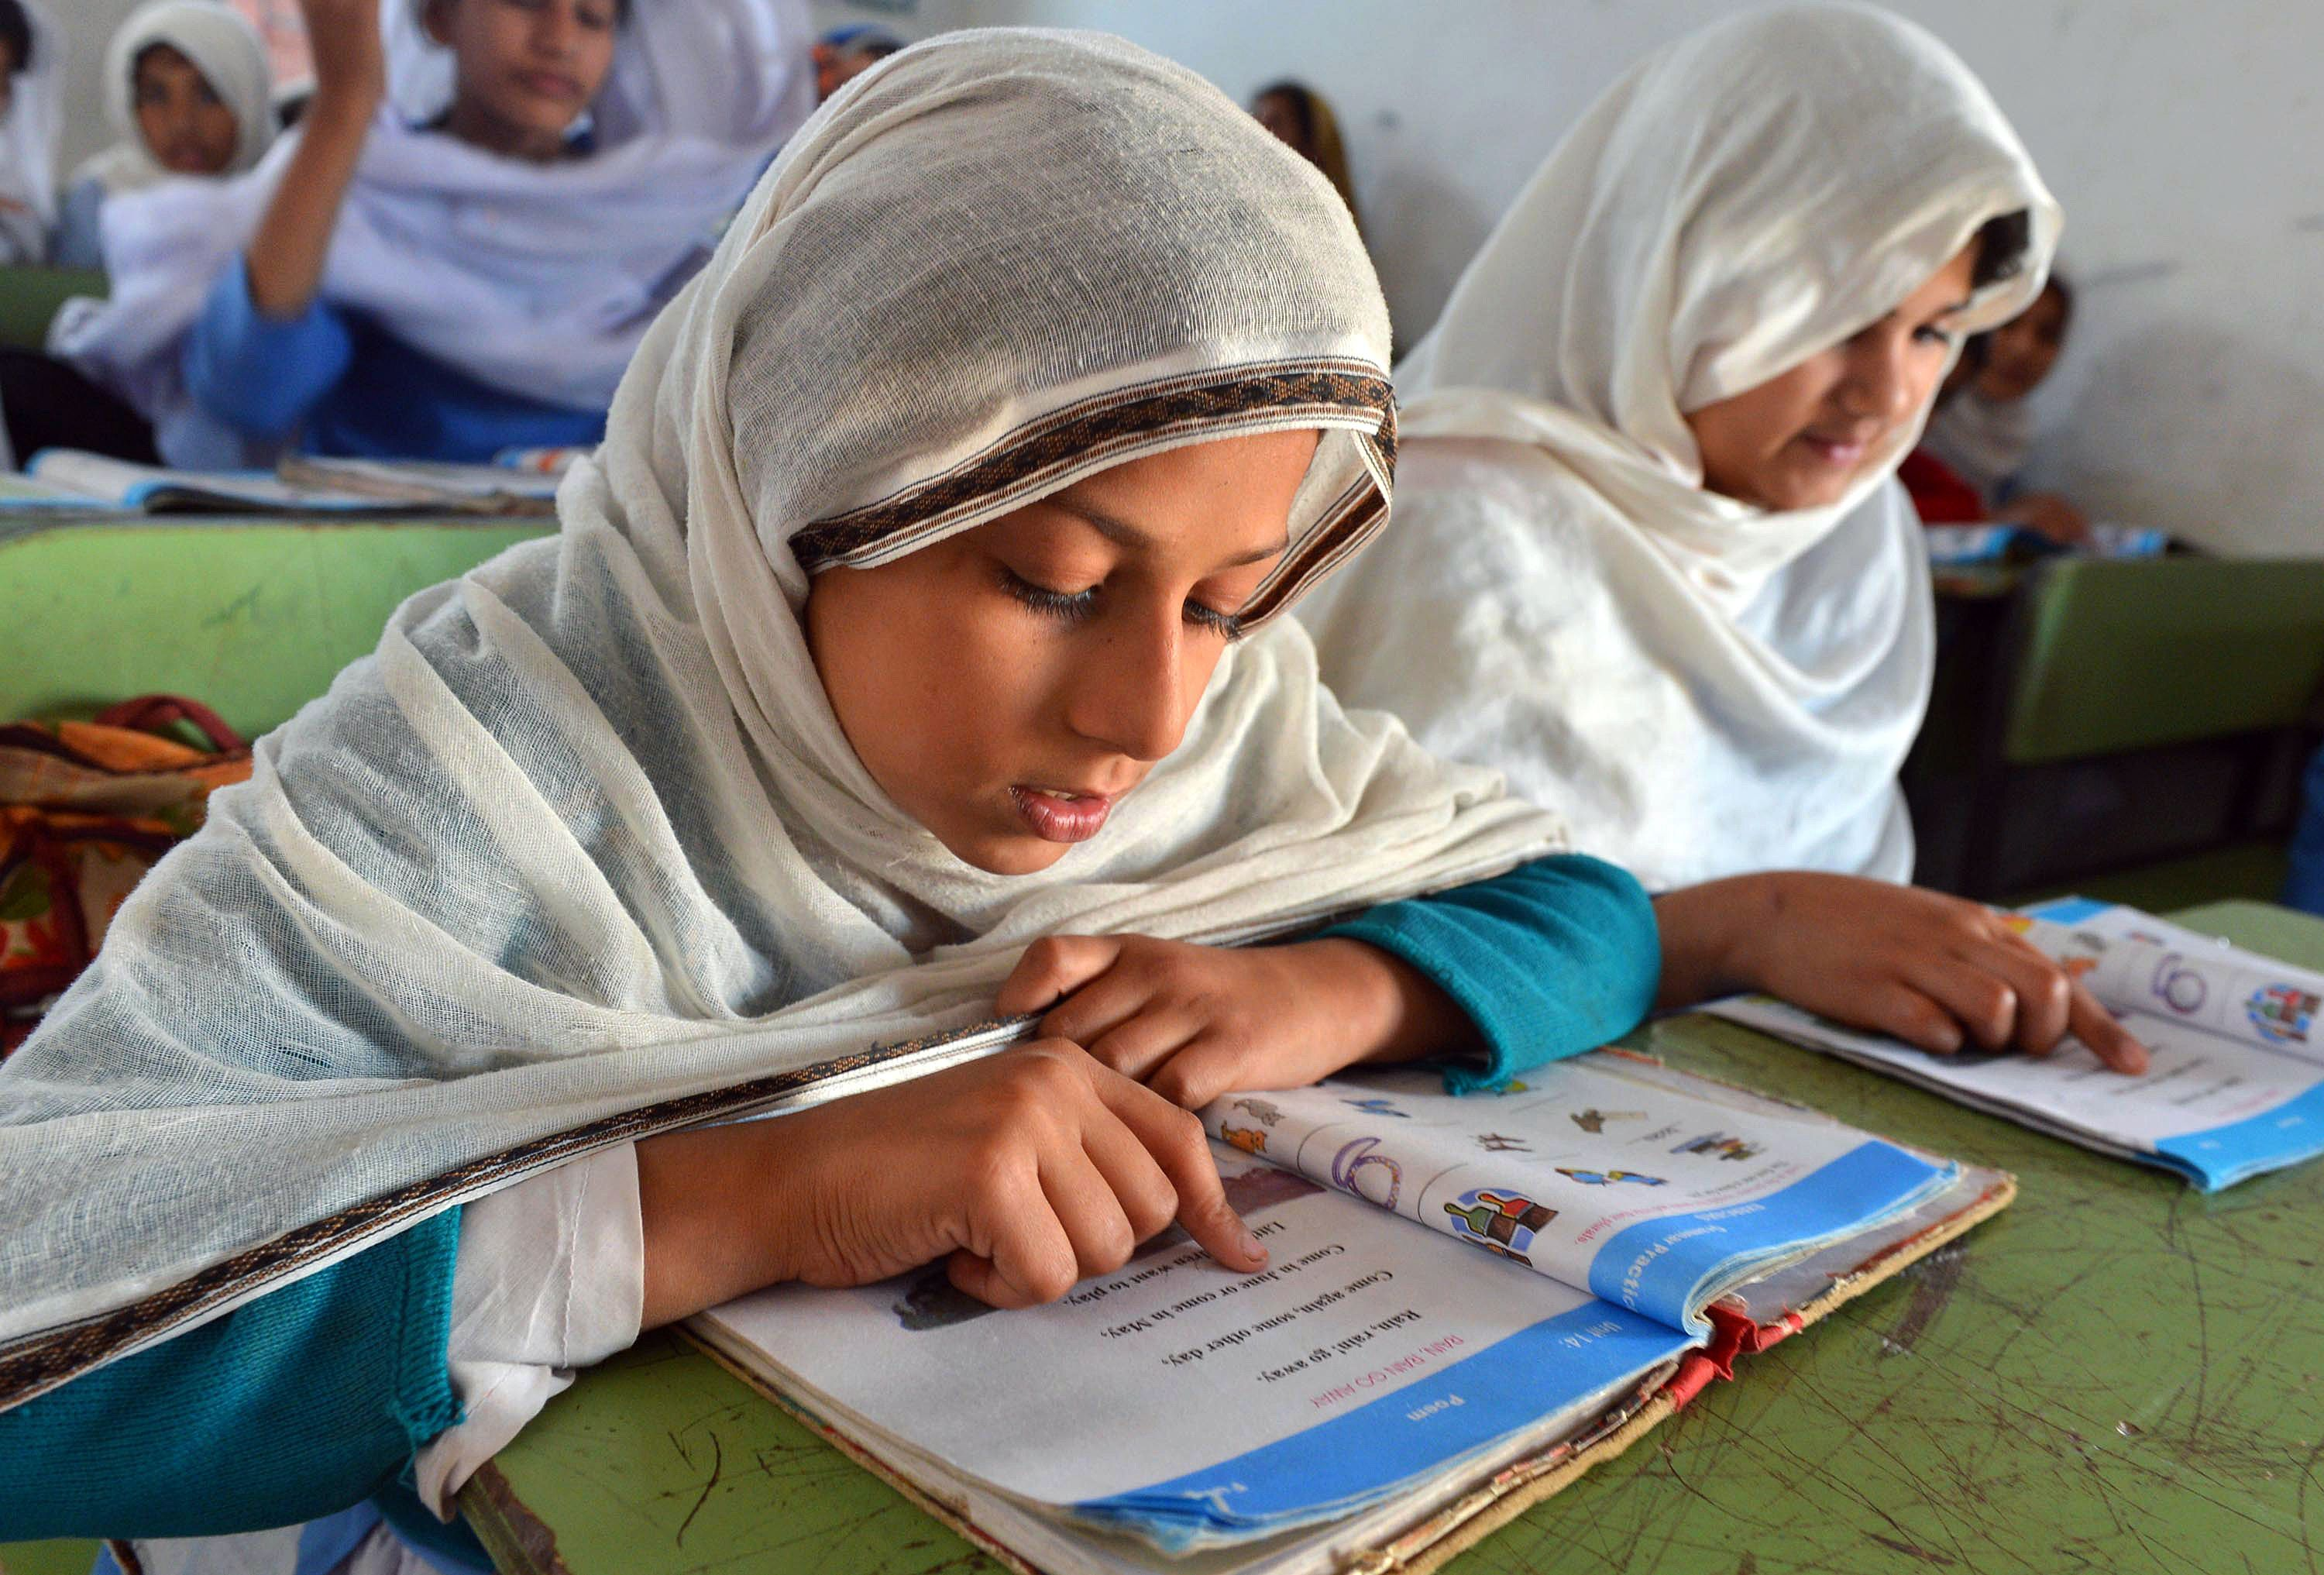 The Sindh Endowment Fund has awarded10,086 scholarships since 2002. PHOTO: PAKISTANTODAY